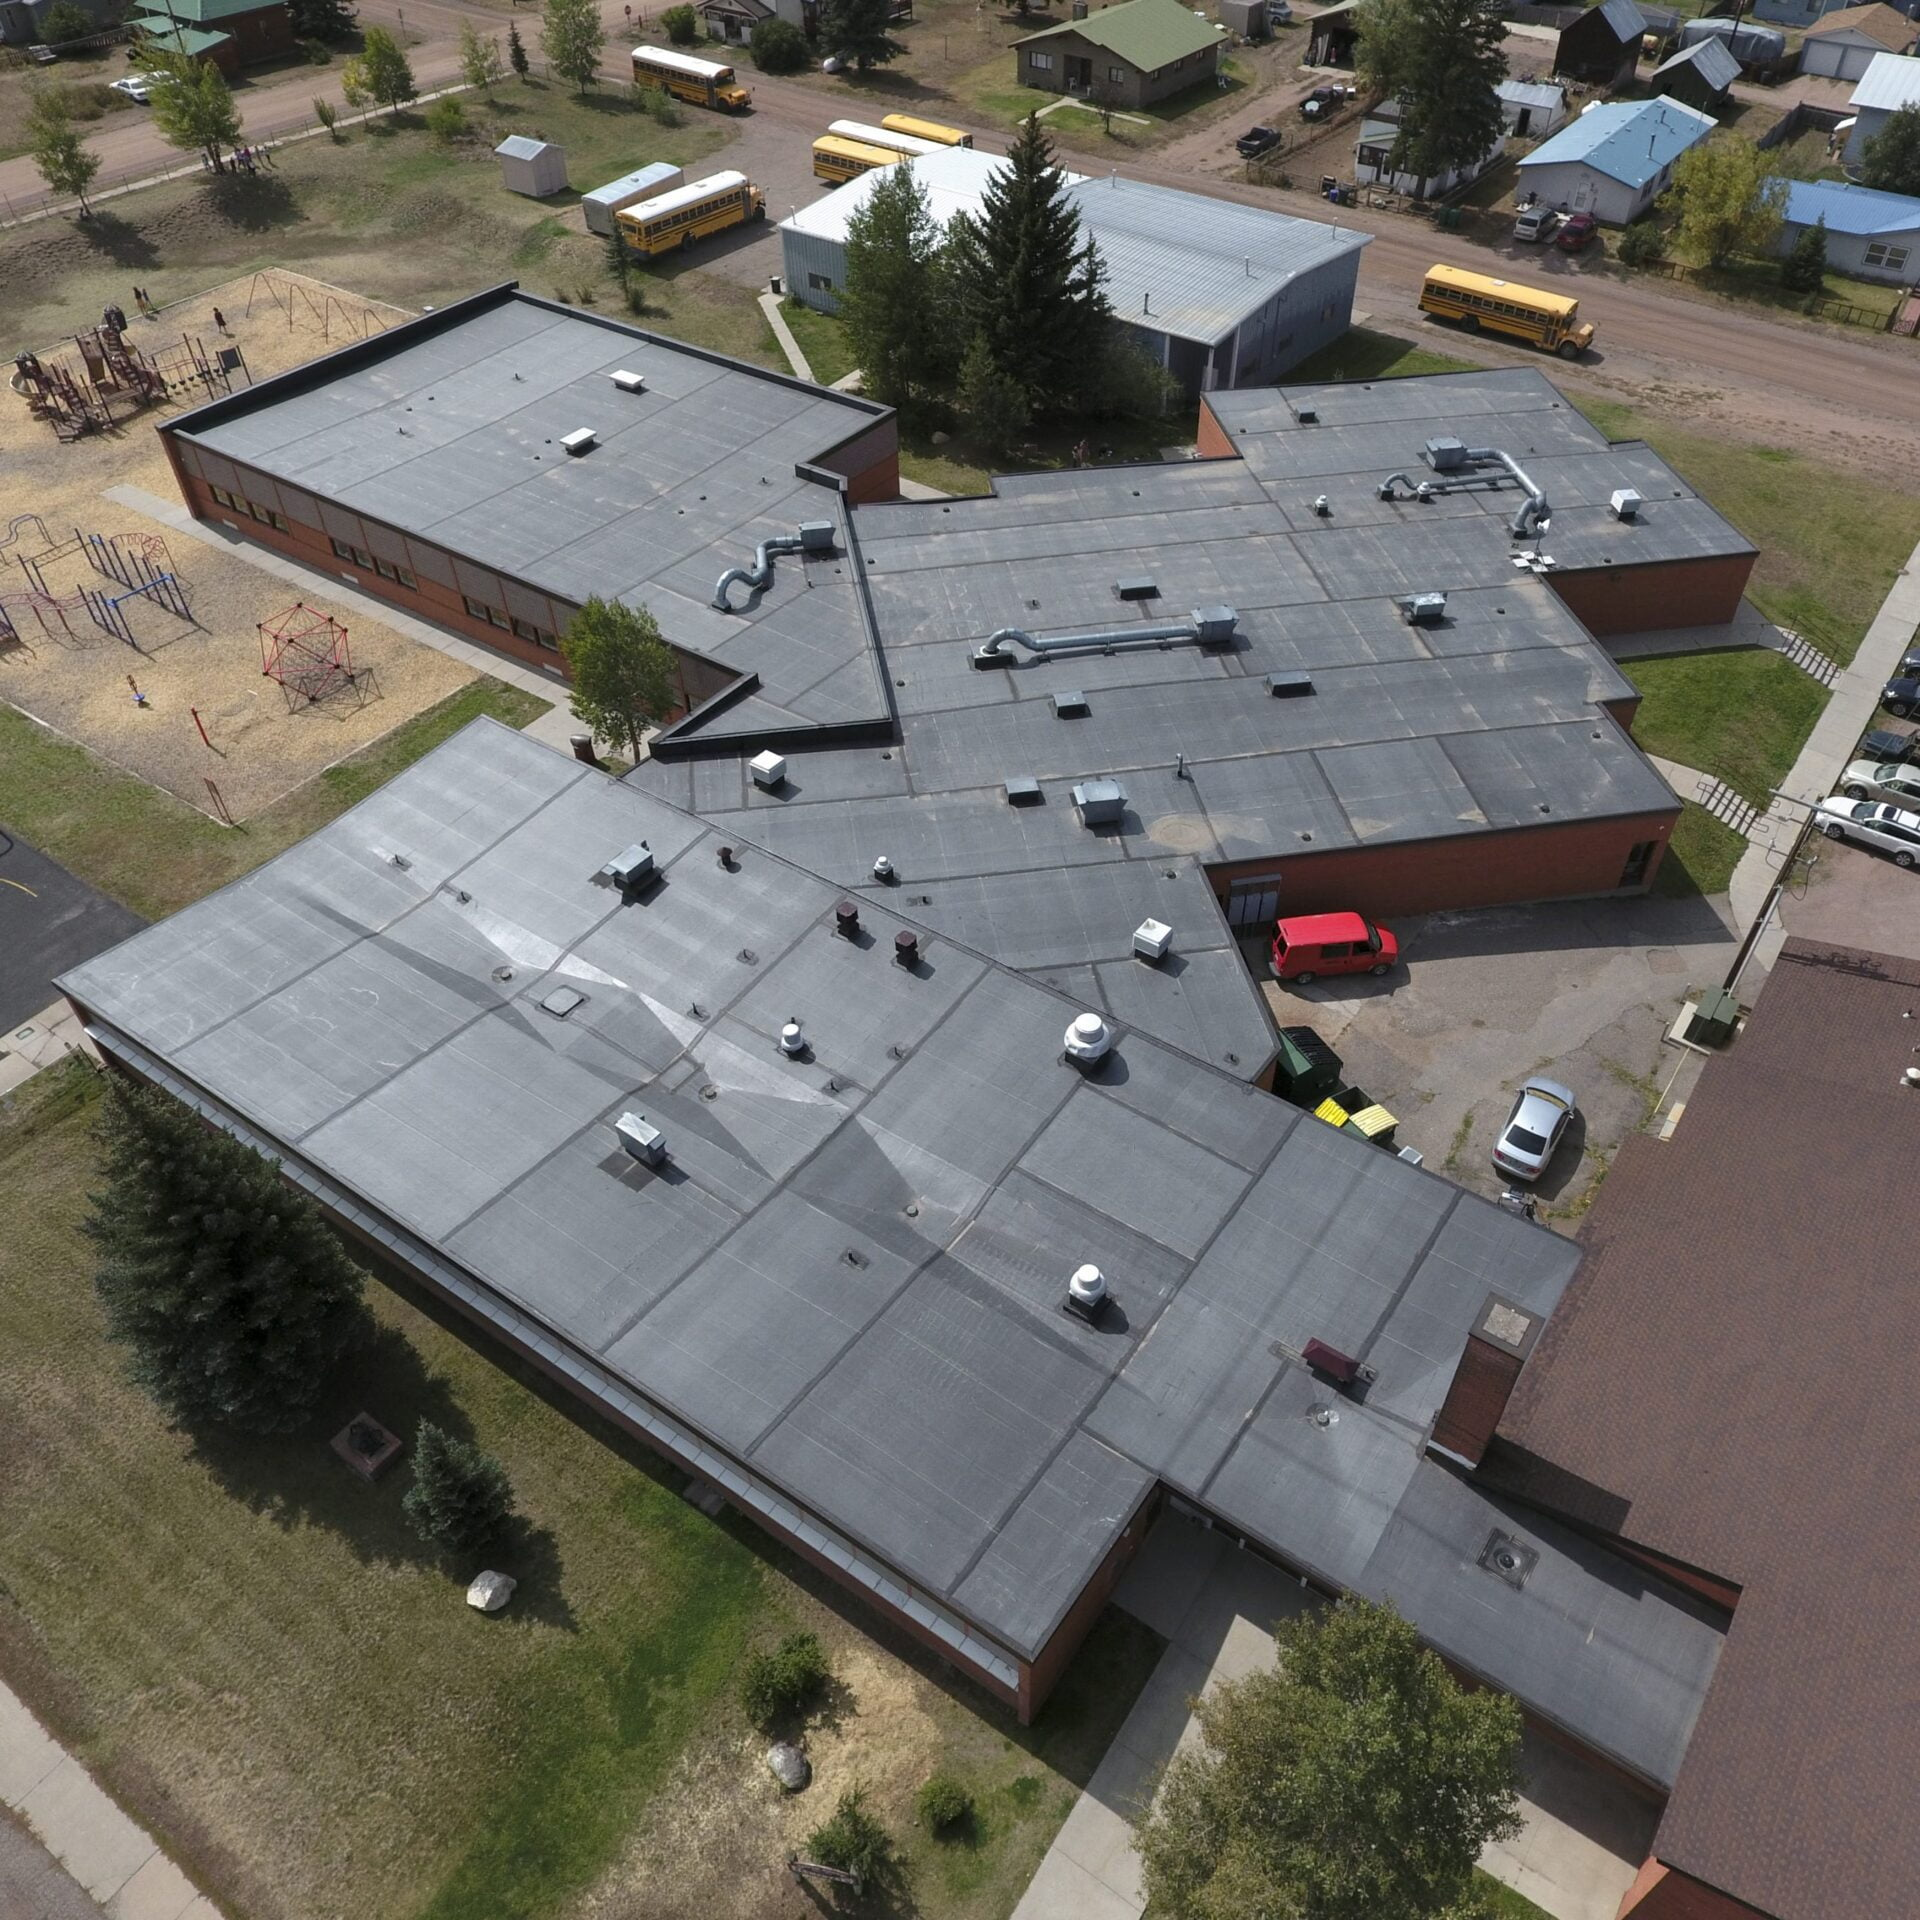 Image shot at South Routt Elementary School, After Drone Shots, Yampa, Colorado, September 18, 2020, Jeffrey Parr/Supreme Roofing